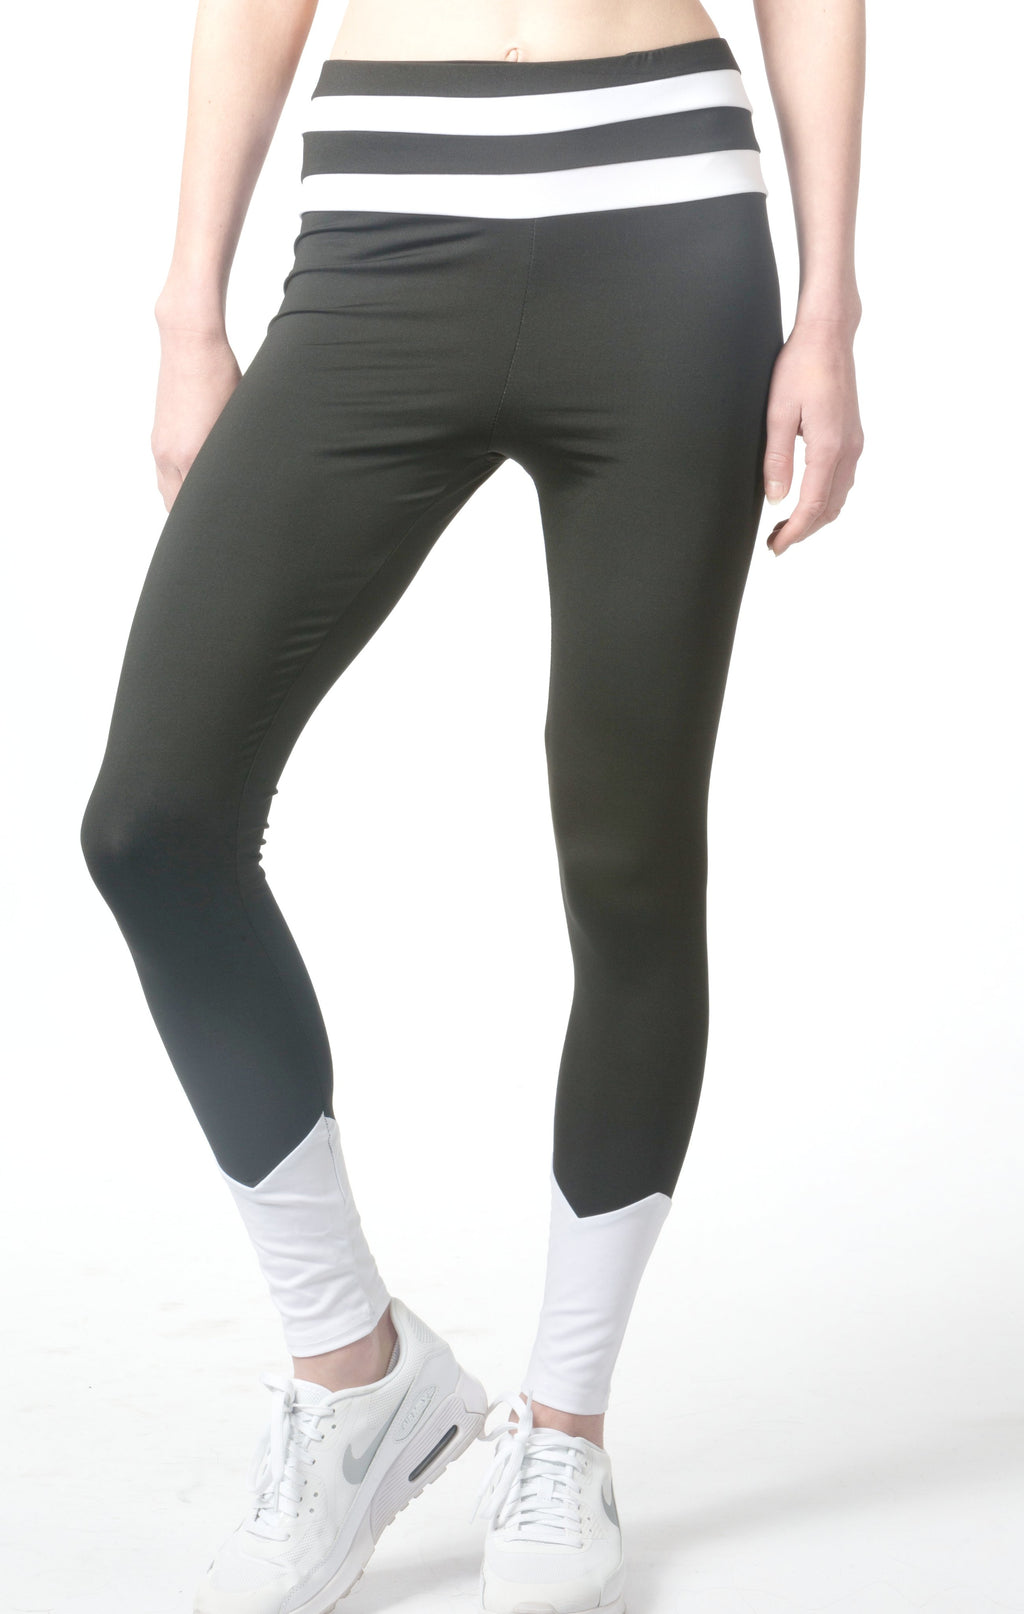 Women's Four Way Stretch Activewear Slim Legging Yoga Pants ITEM NO:EM180016